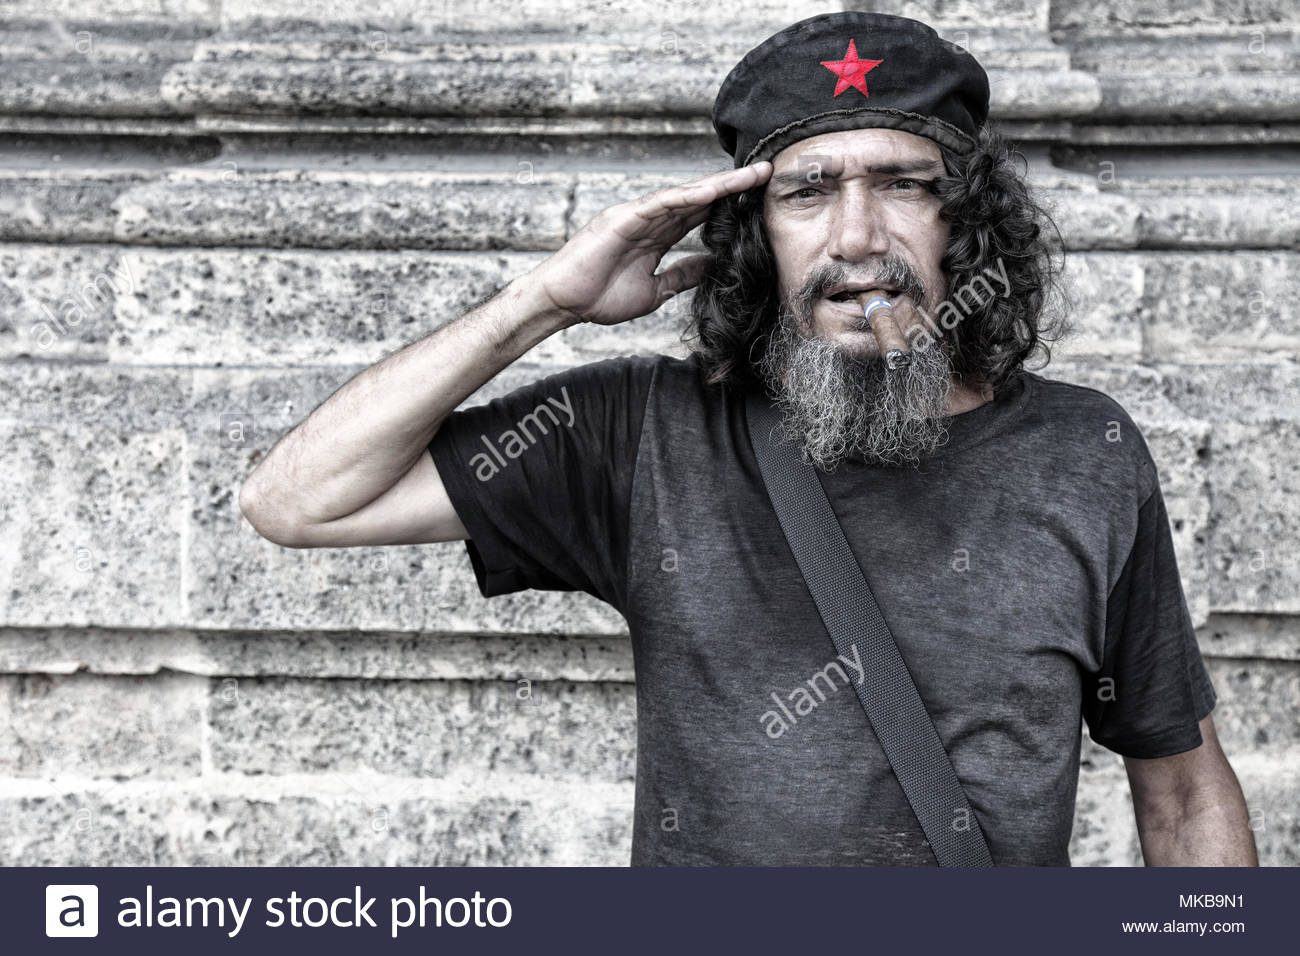 Cuban communist salute - Stock Image